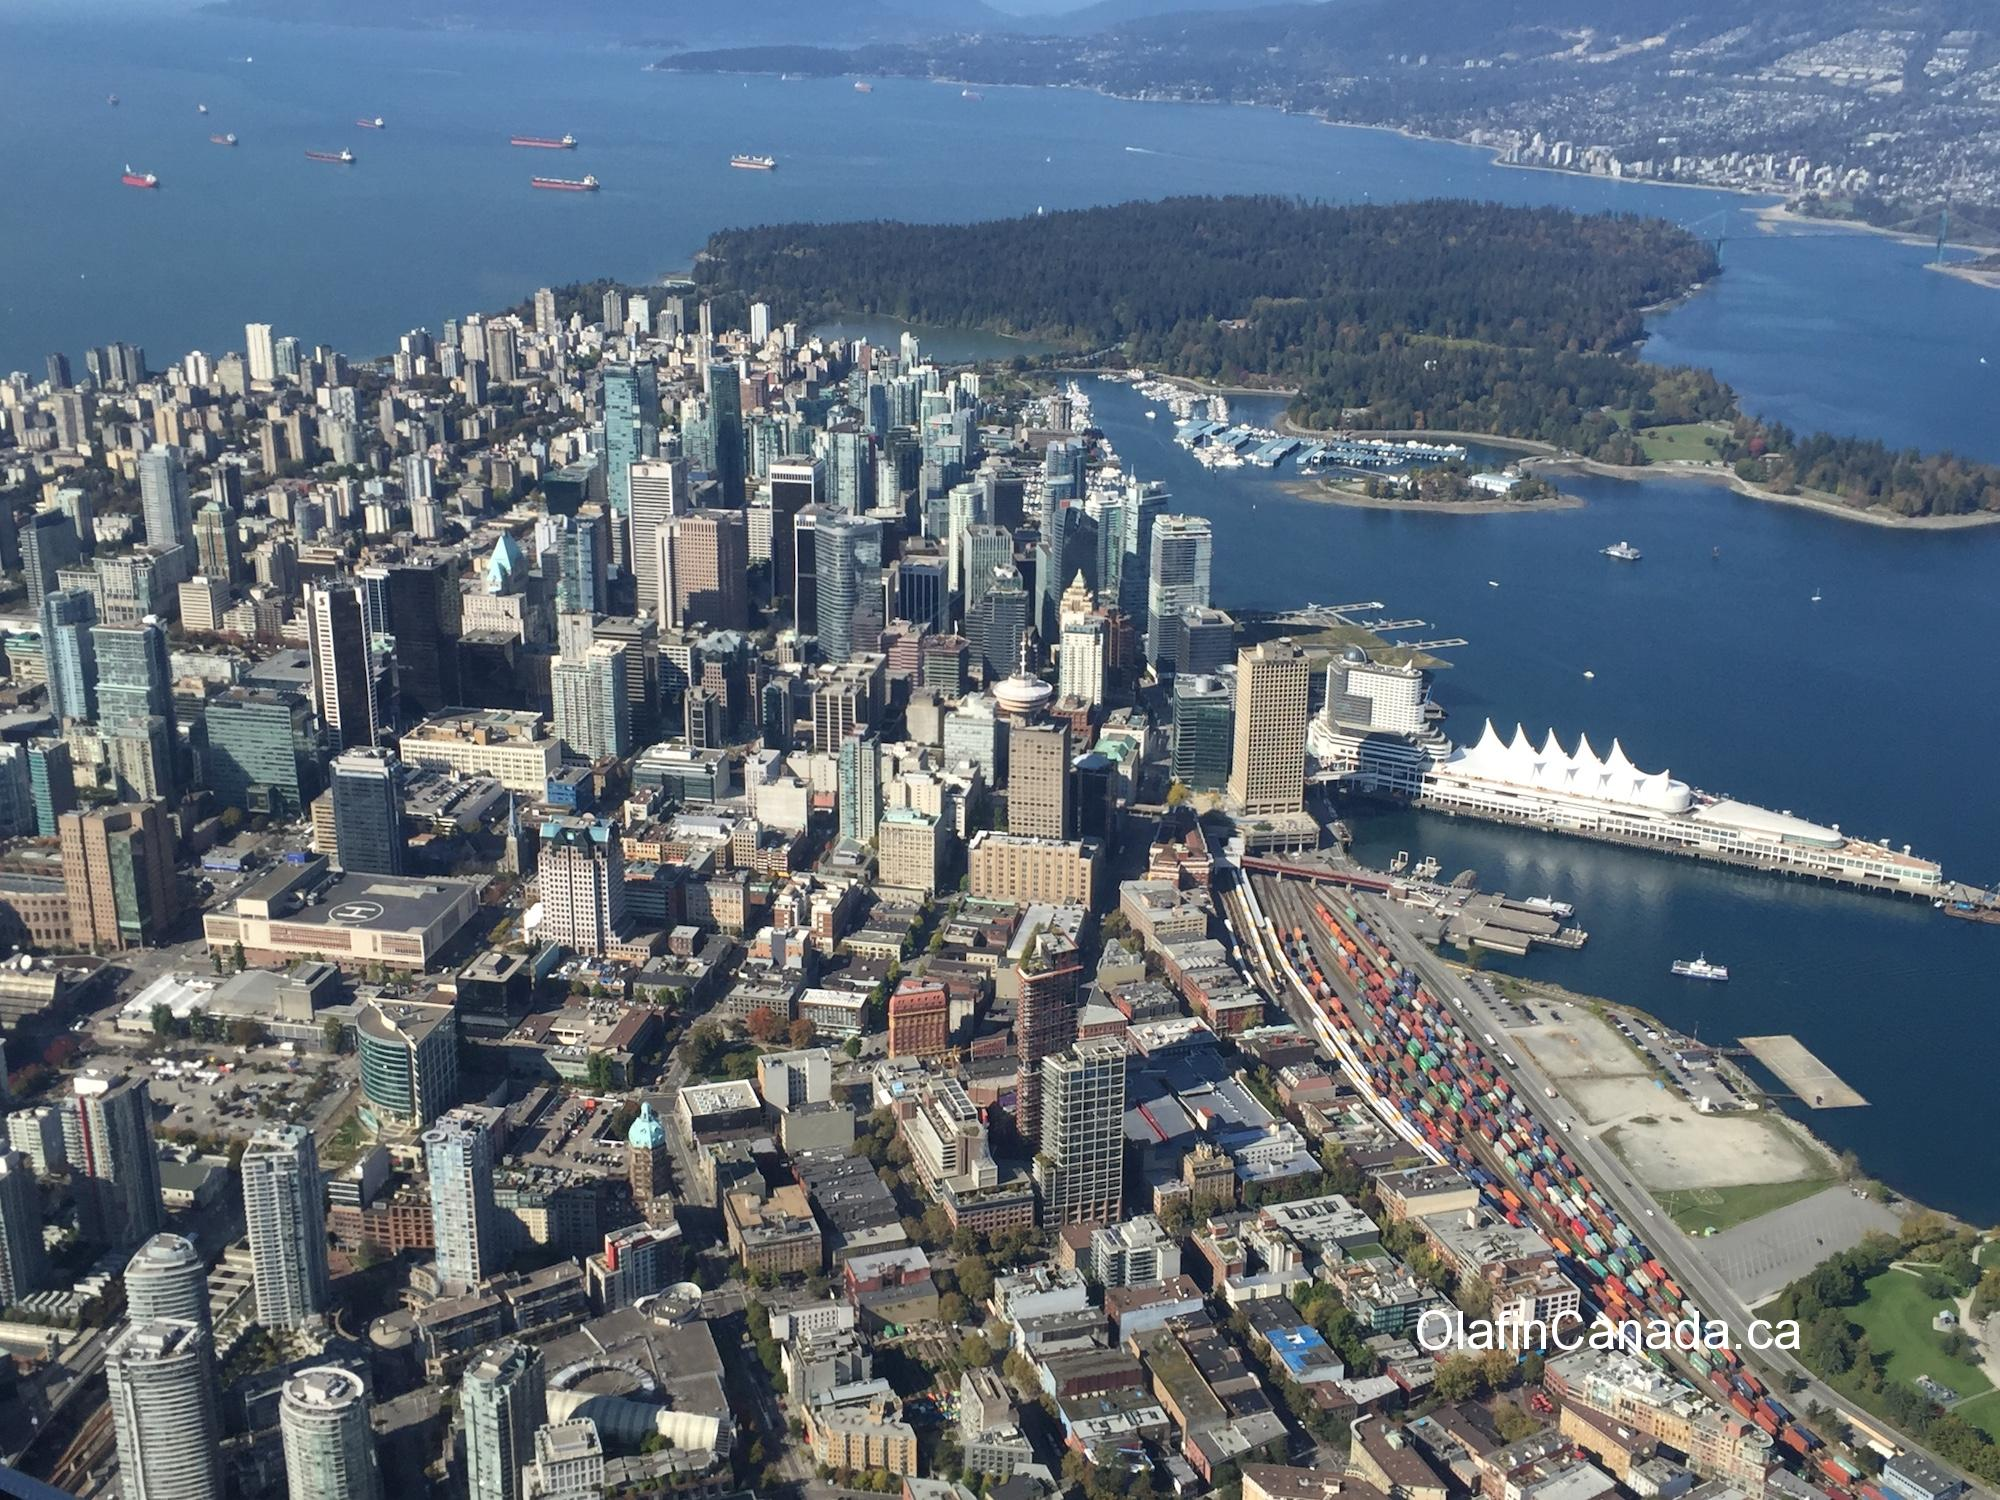 Vancouver downtown and Stanley park from sea plane #olafincanada #britishcolumbia #discoverbc #vancouver #stanleypark #seaplaneview